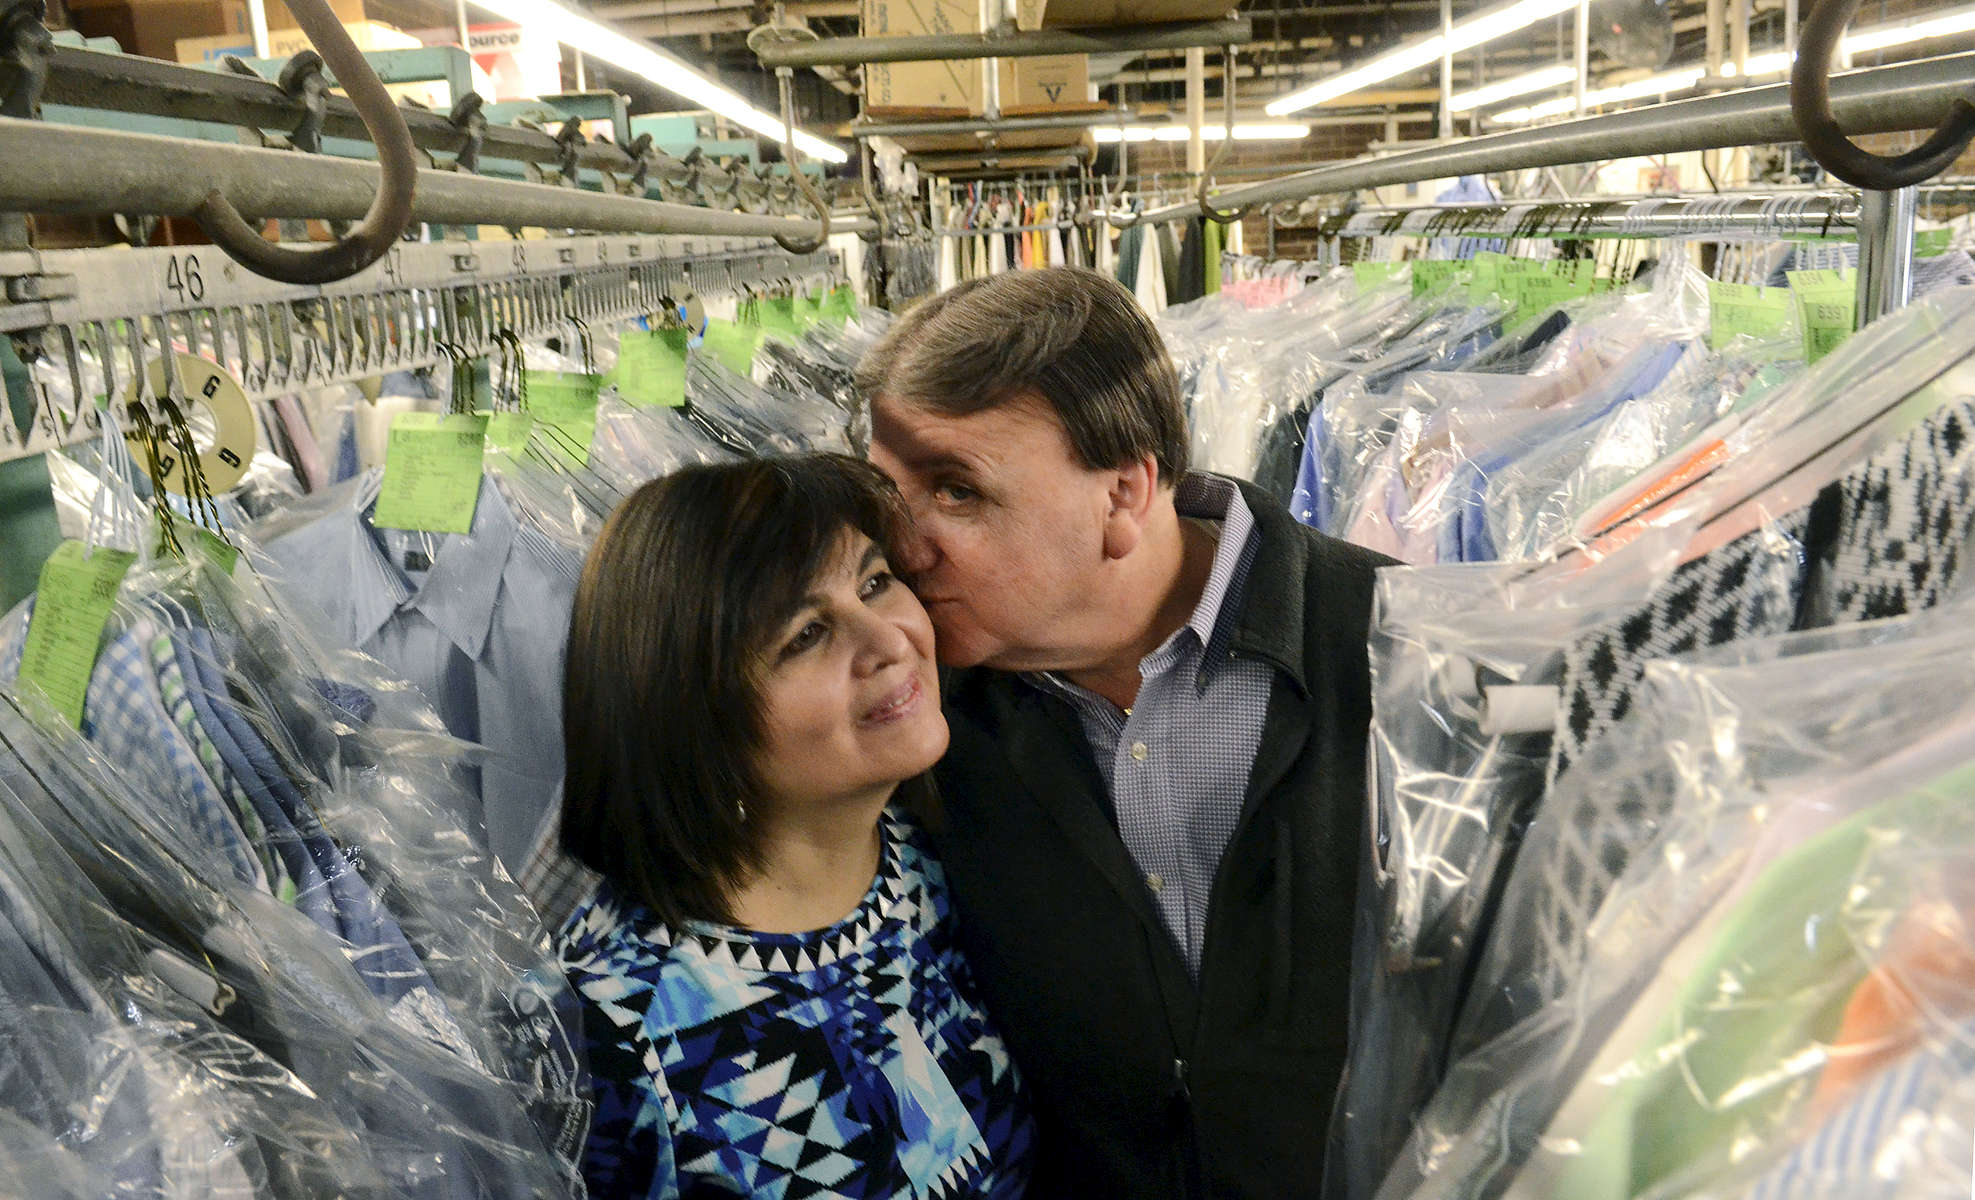 First Place | PortraitJohn D. Simmons, The Charlotte ObserverXimena  and Robert Arroba, the owners of Carolina Cleaners on South Blvd., have been married since October 2005. they look forward to their tenth Valentine's Day together.